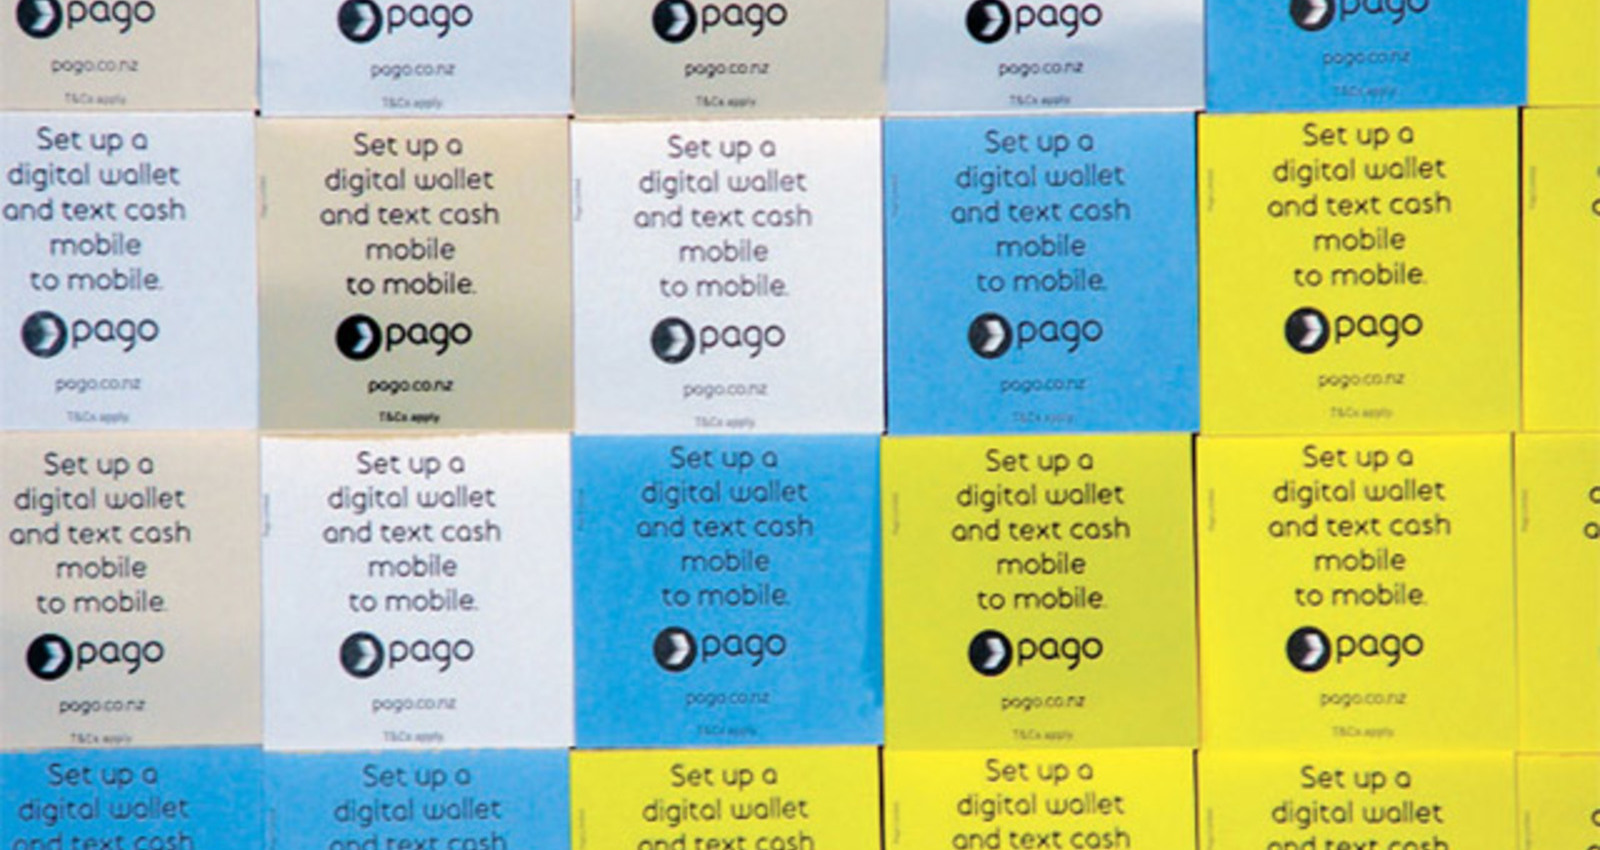 Pago Post it notes